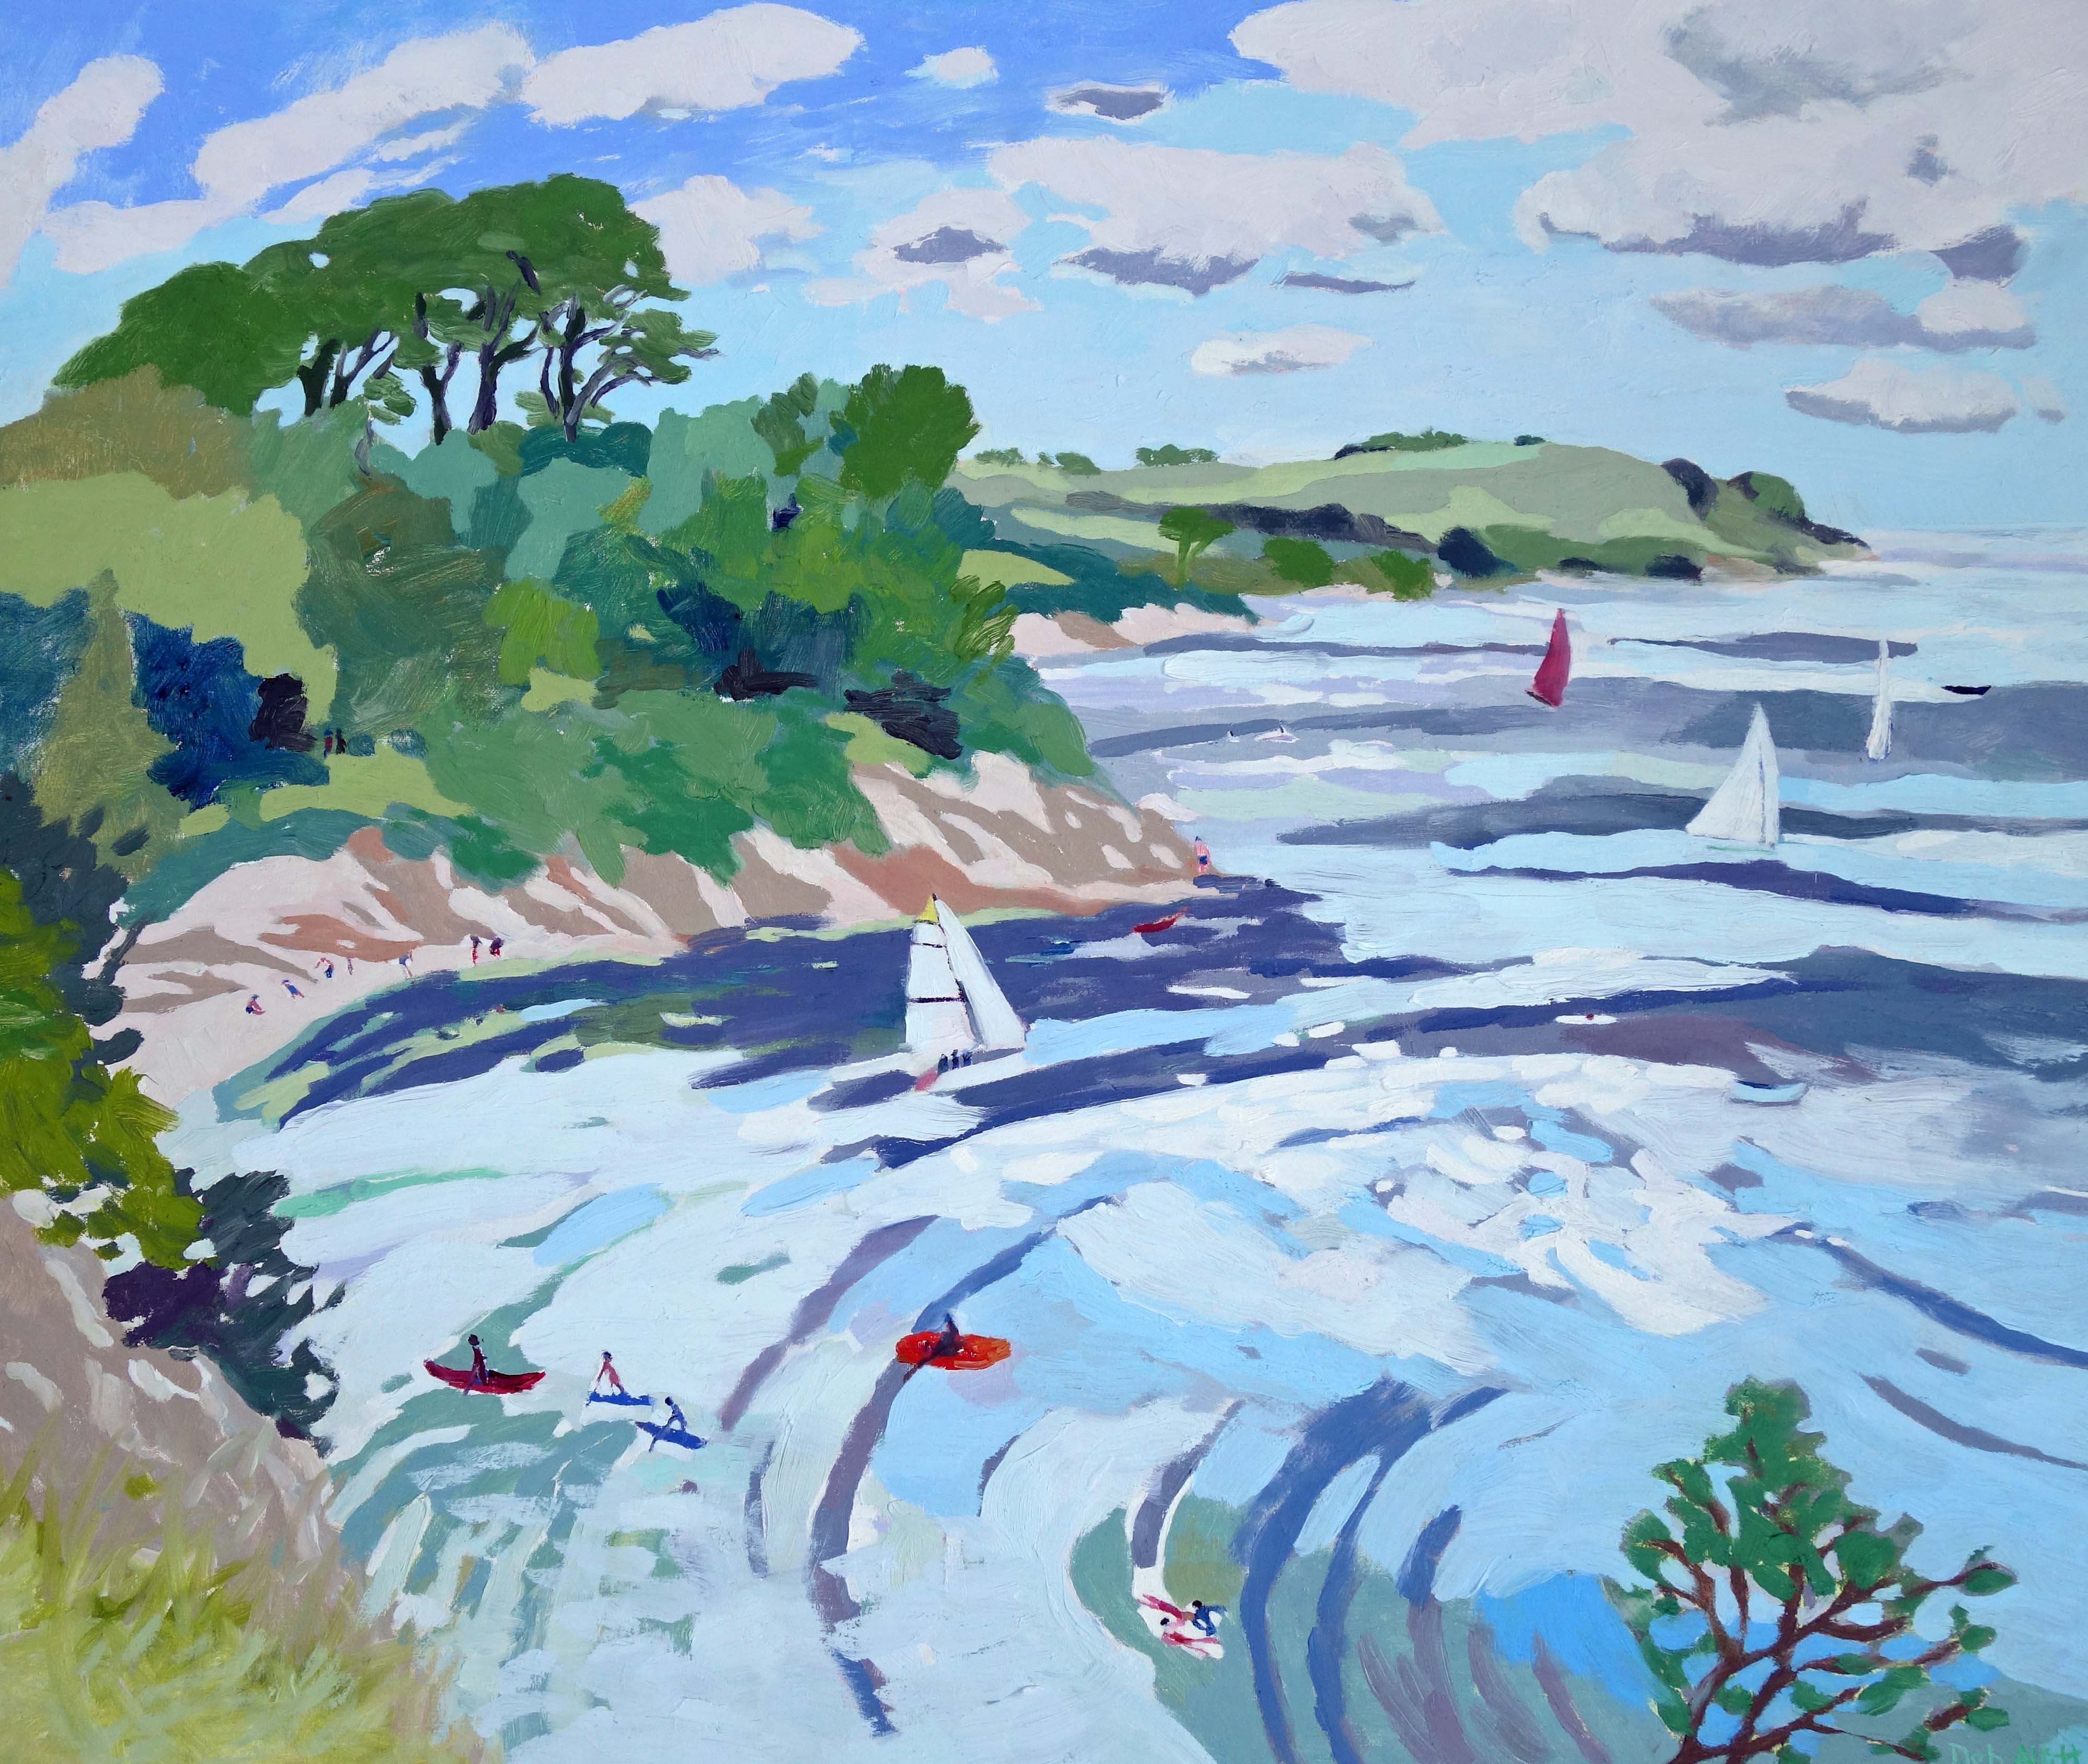 A Day on the Water, Helford Estuary. Oil on canvas. 60 x 70 cm.